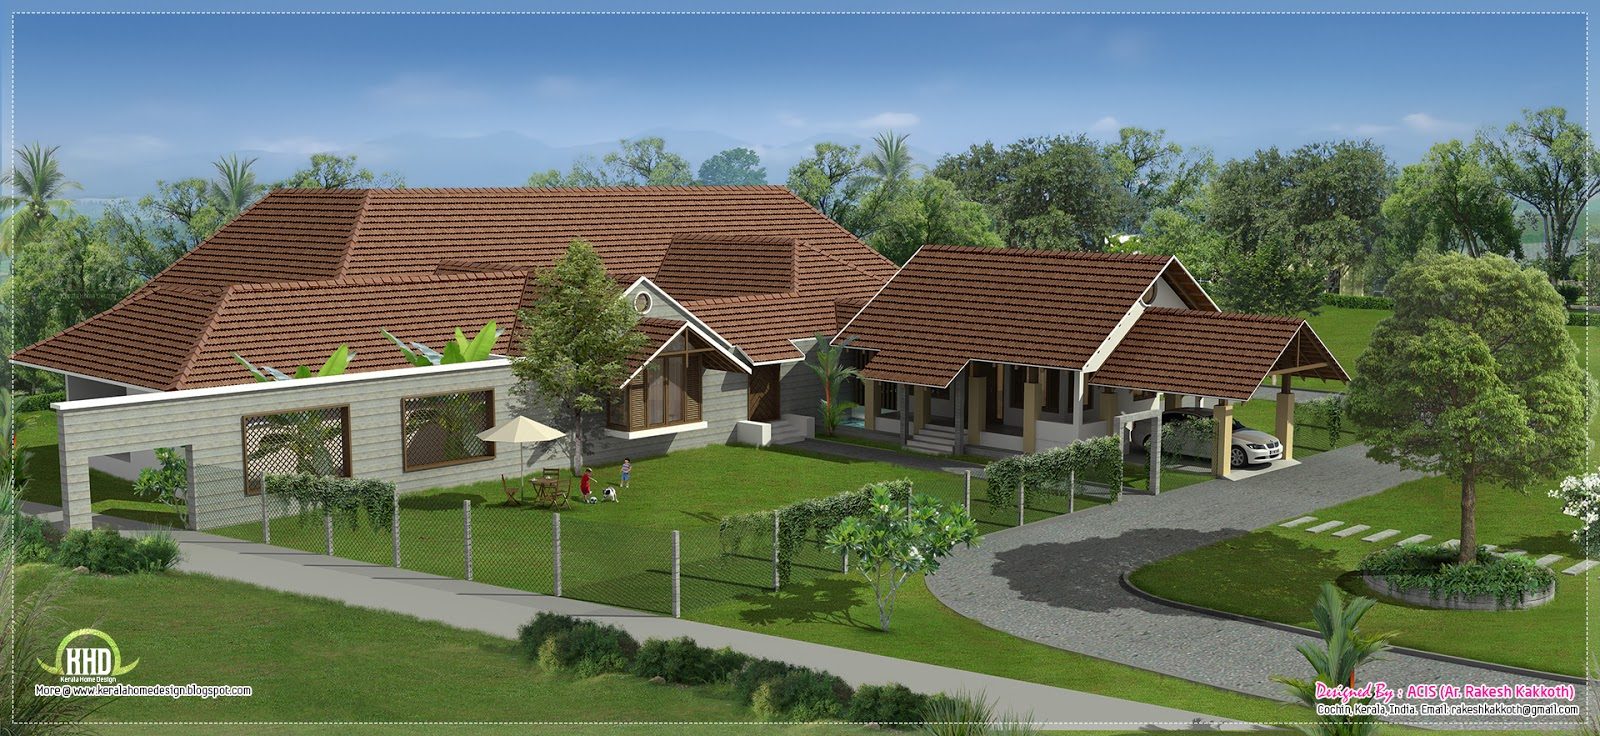 Courtyard u shaped house plans luxury bungalow house plans for U shaped house plans